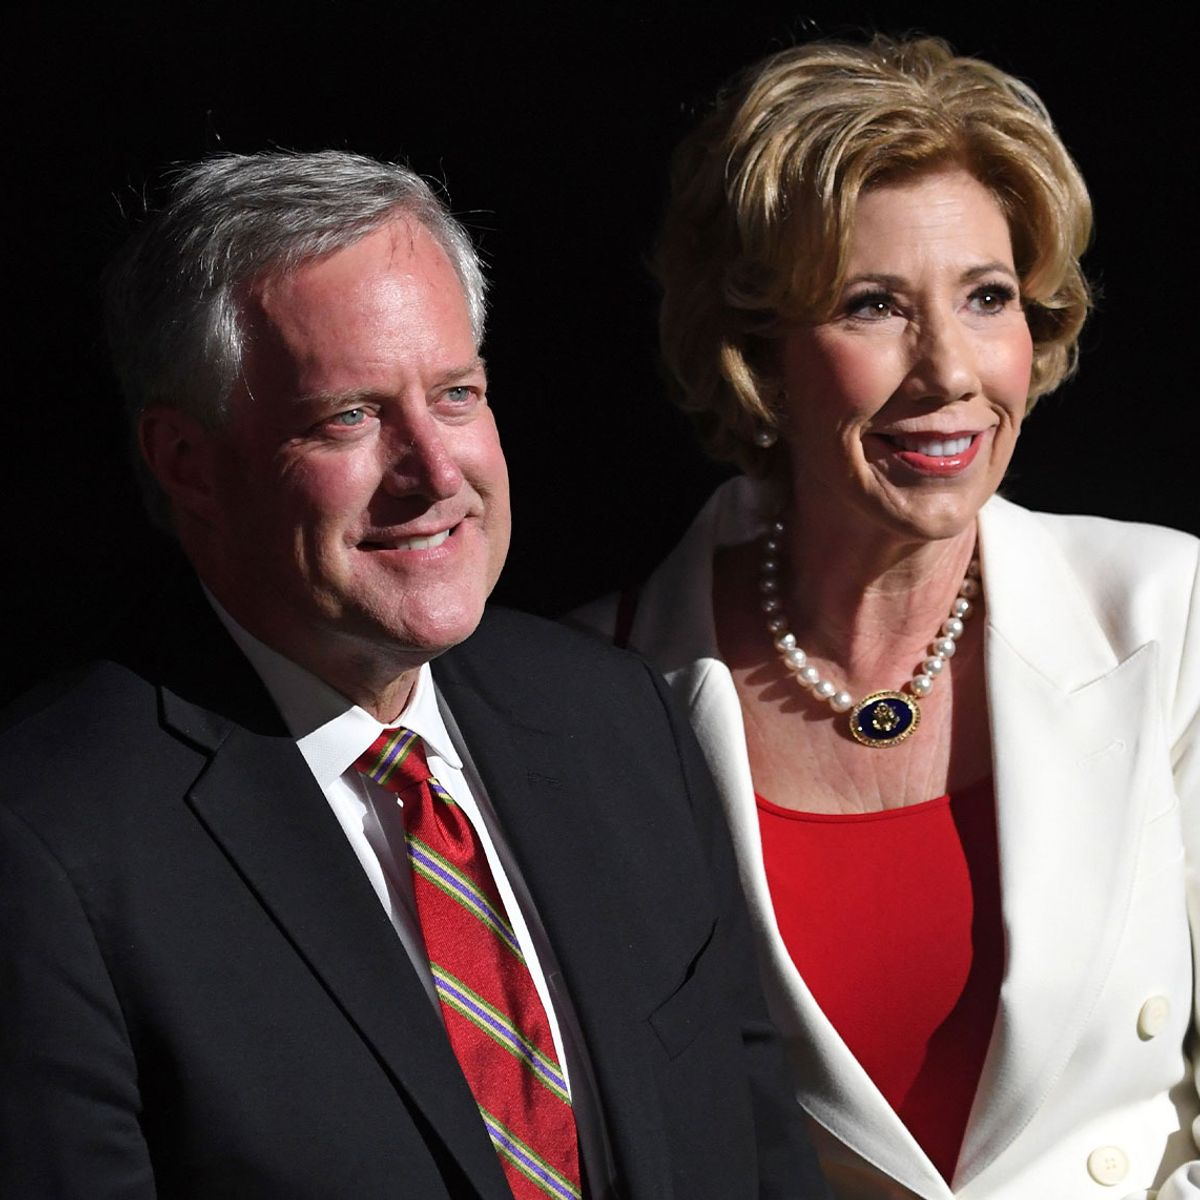 Mark Meadows Apparently Used Taxpayer Funds To Help Wife S Friend Raise Campaign Cash Salon Com James daniel jordan (born february 17, 1964) is an american politician serving as the u.s. mark meadows apparently used taxpayer